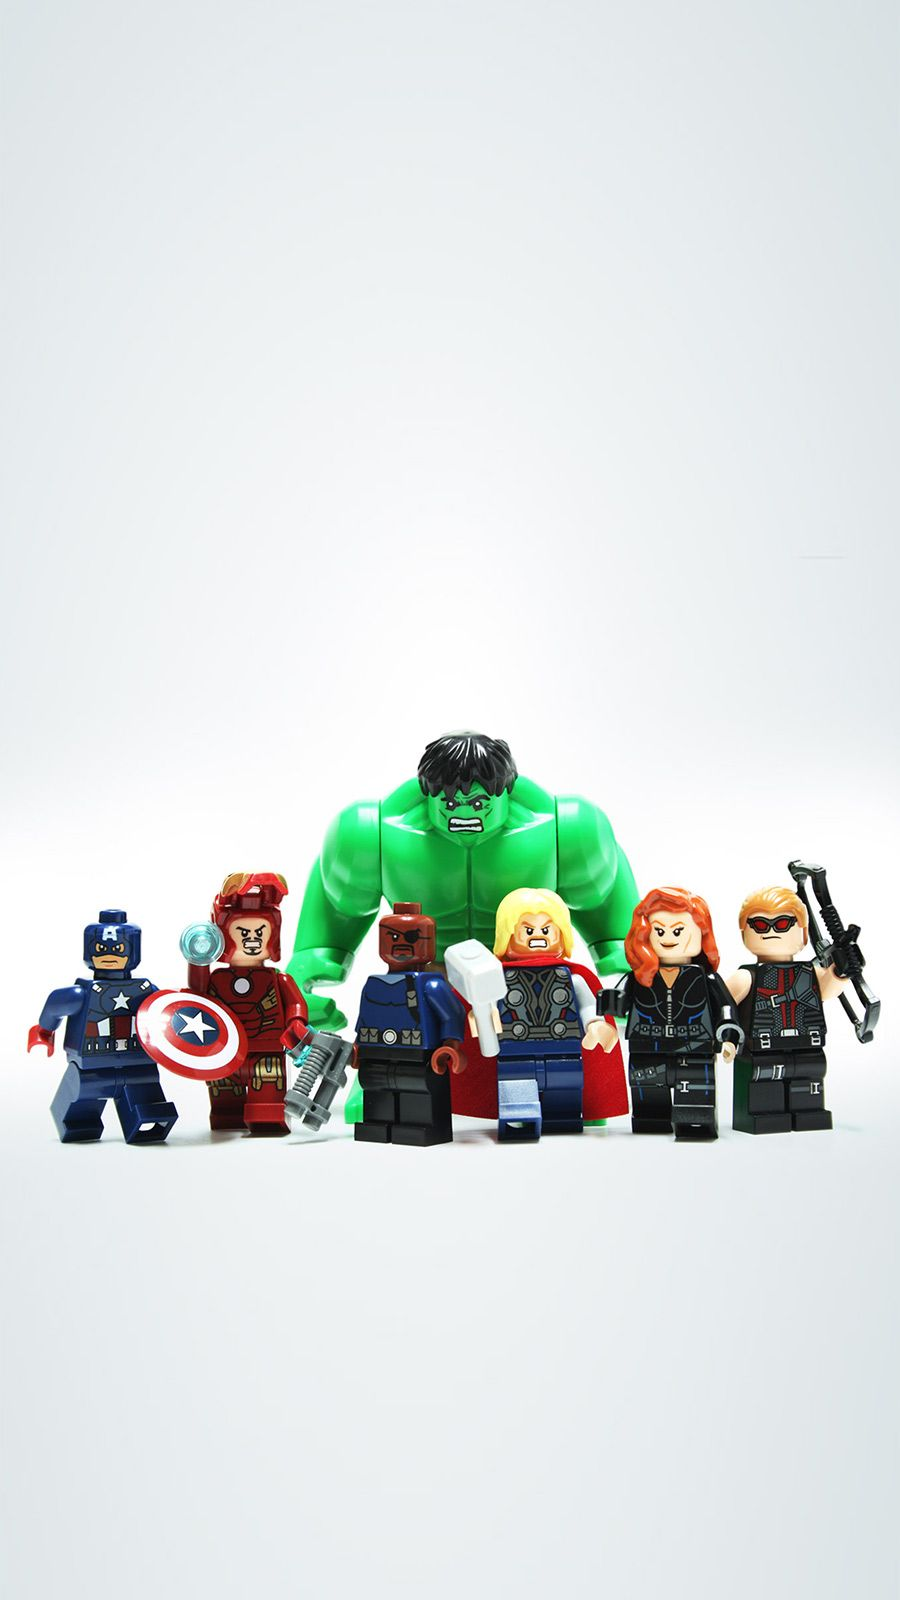 The Avengers Iphone Wallpaper Hd Google Search Marvel